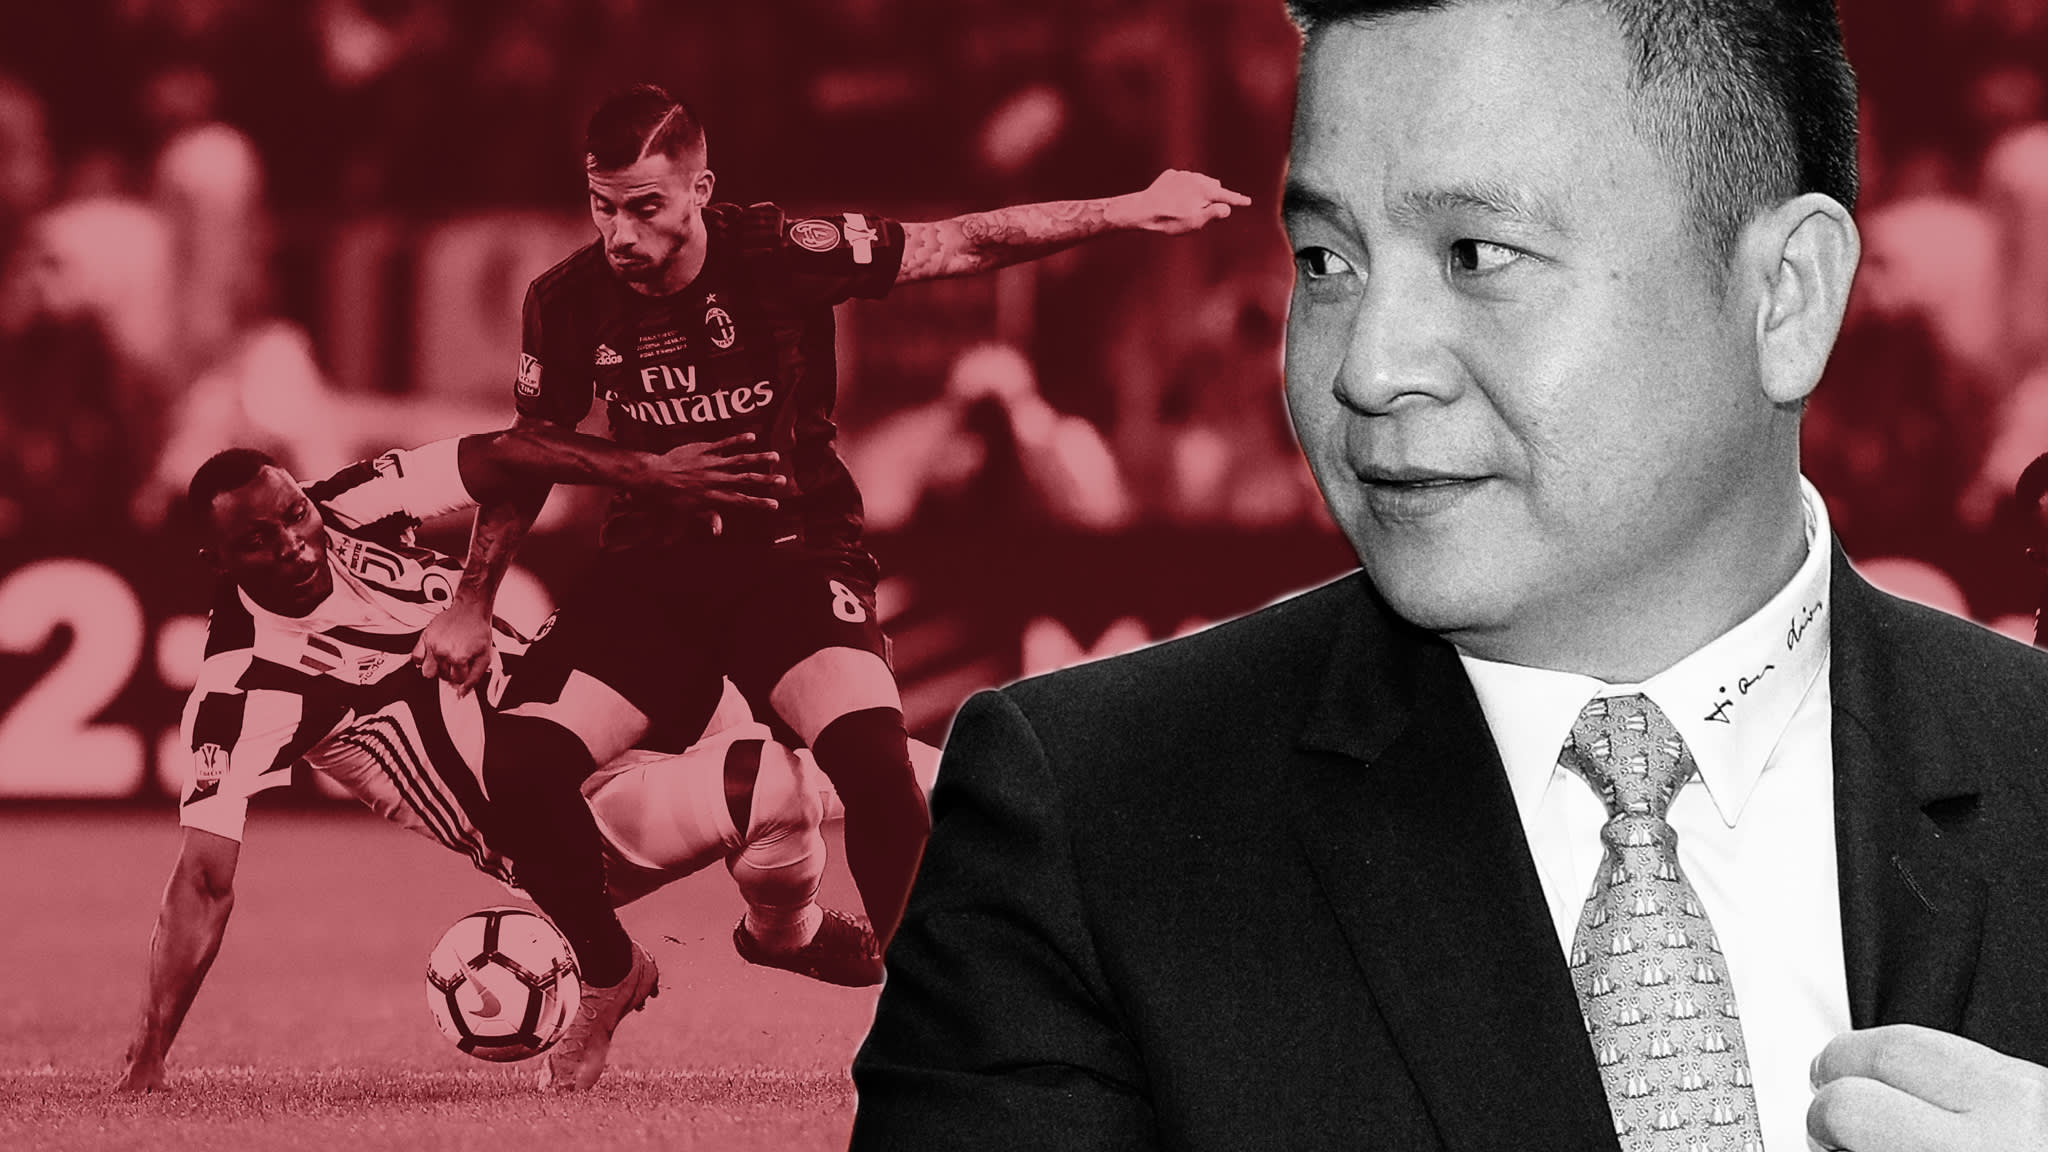 Own goal: how AC Milan's Chinese owners lost control to a US hedge fund